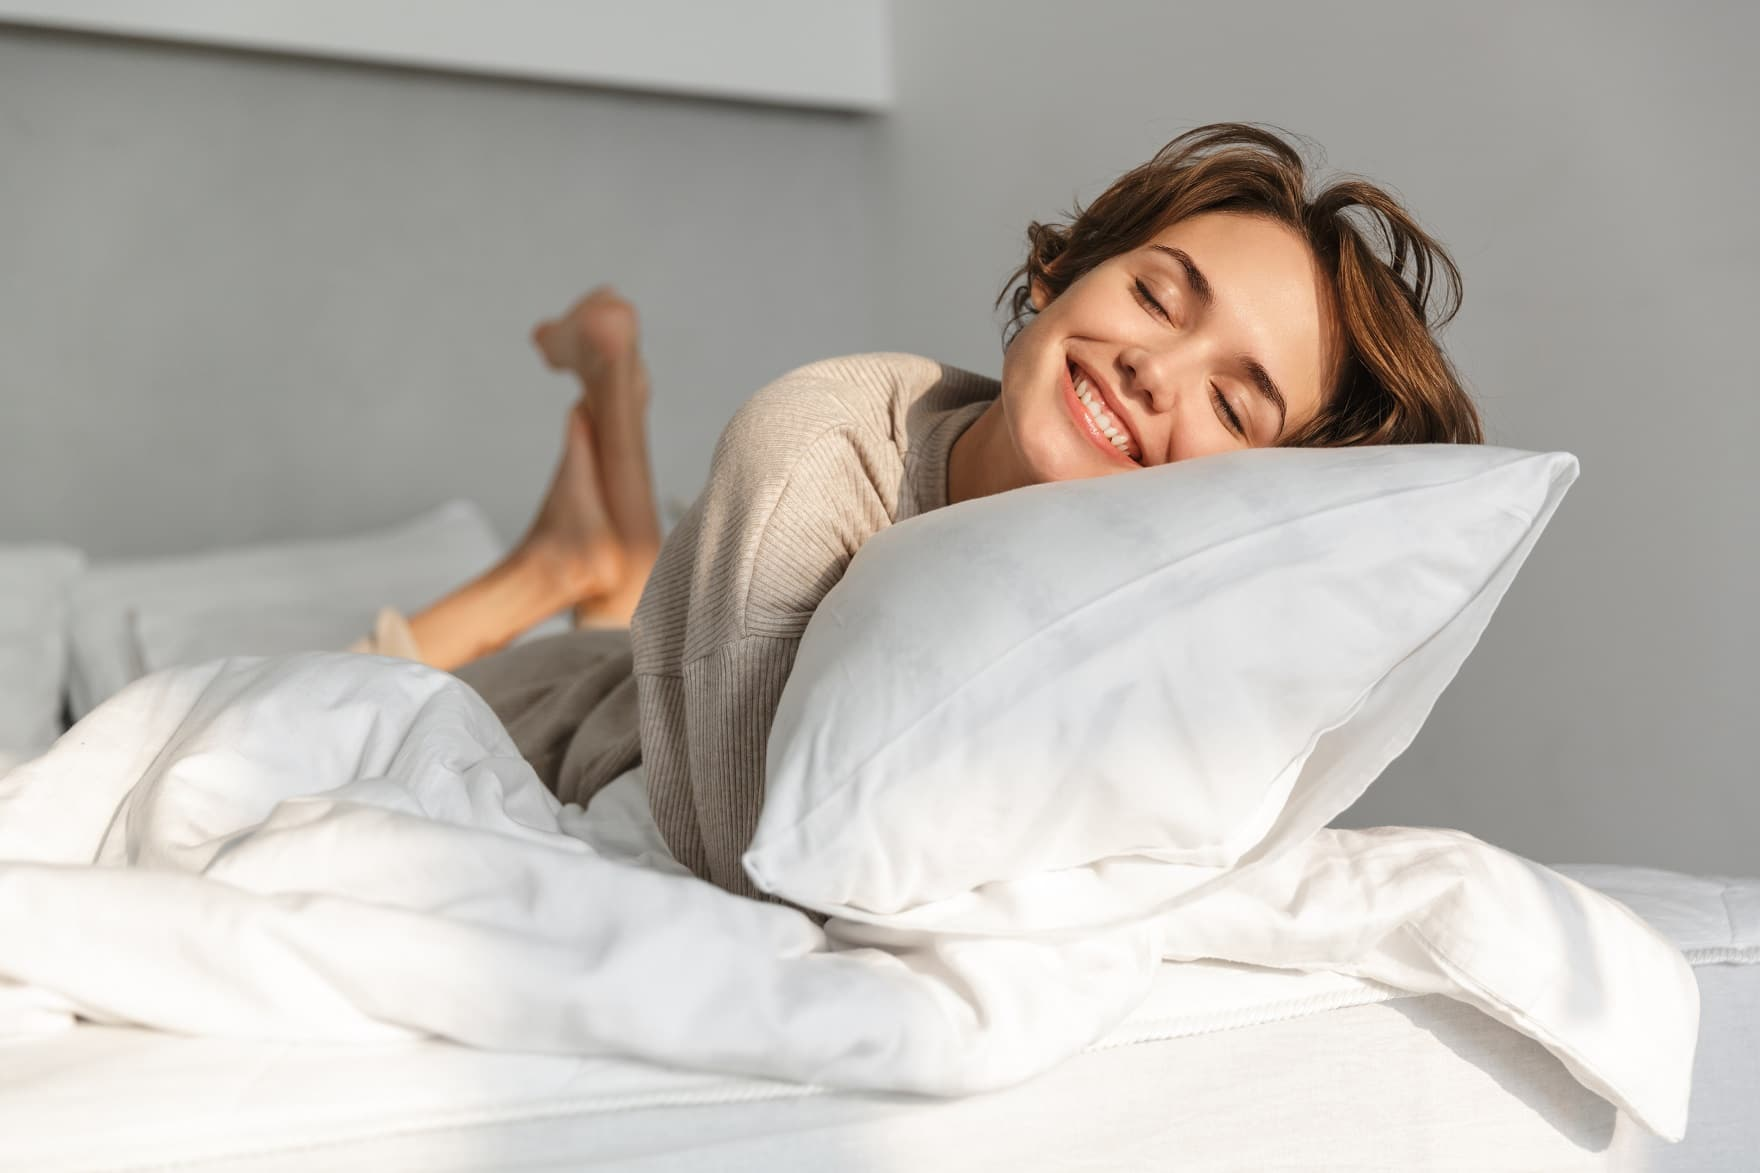 11 Tips For A Comfortable Night's Sleep. Comfortable bedding in the gray colored bedroom